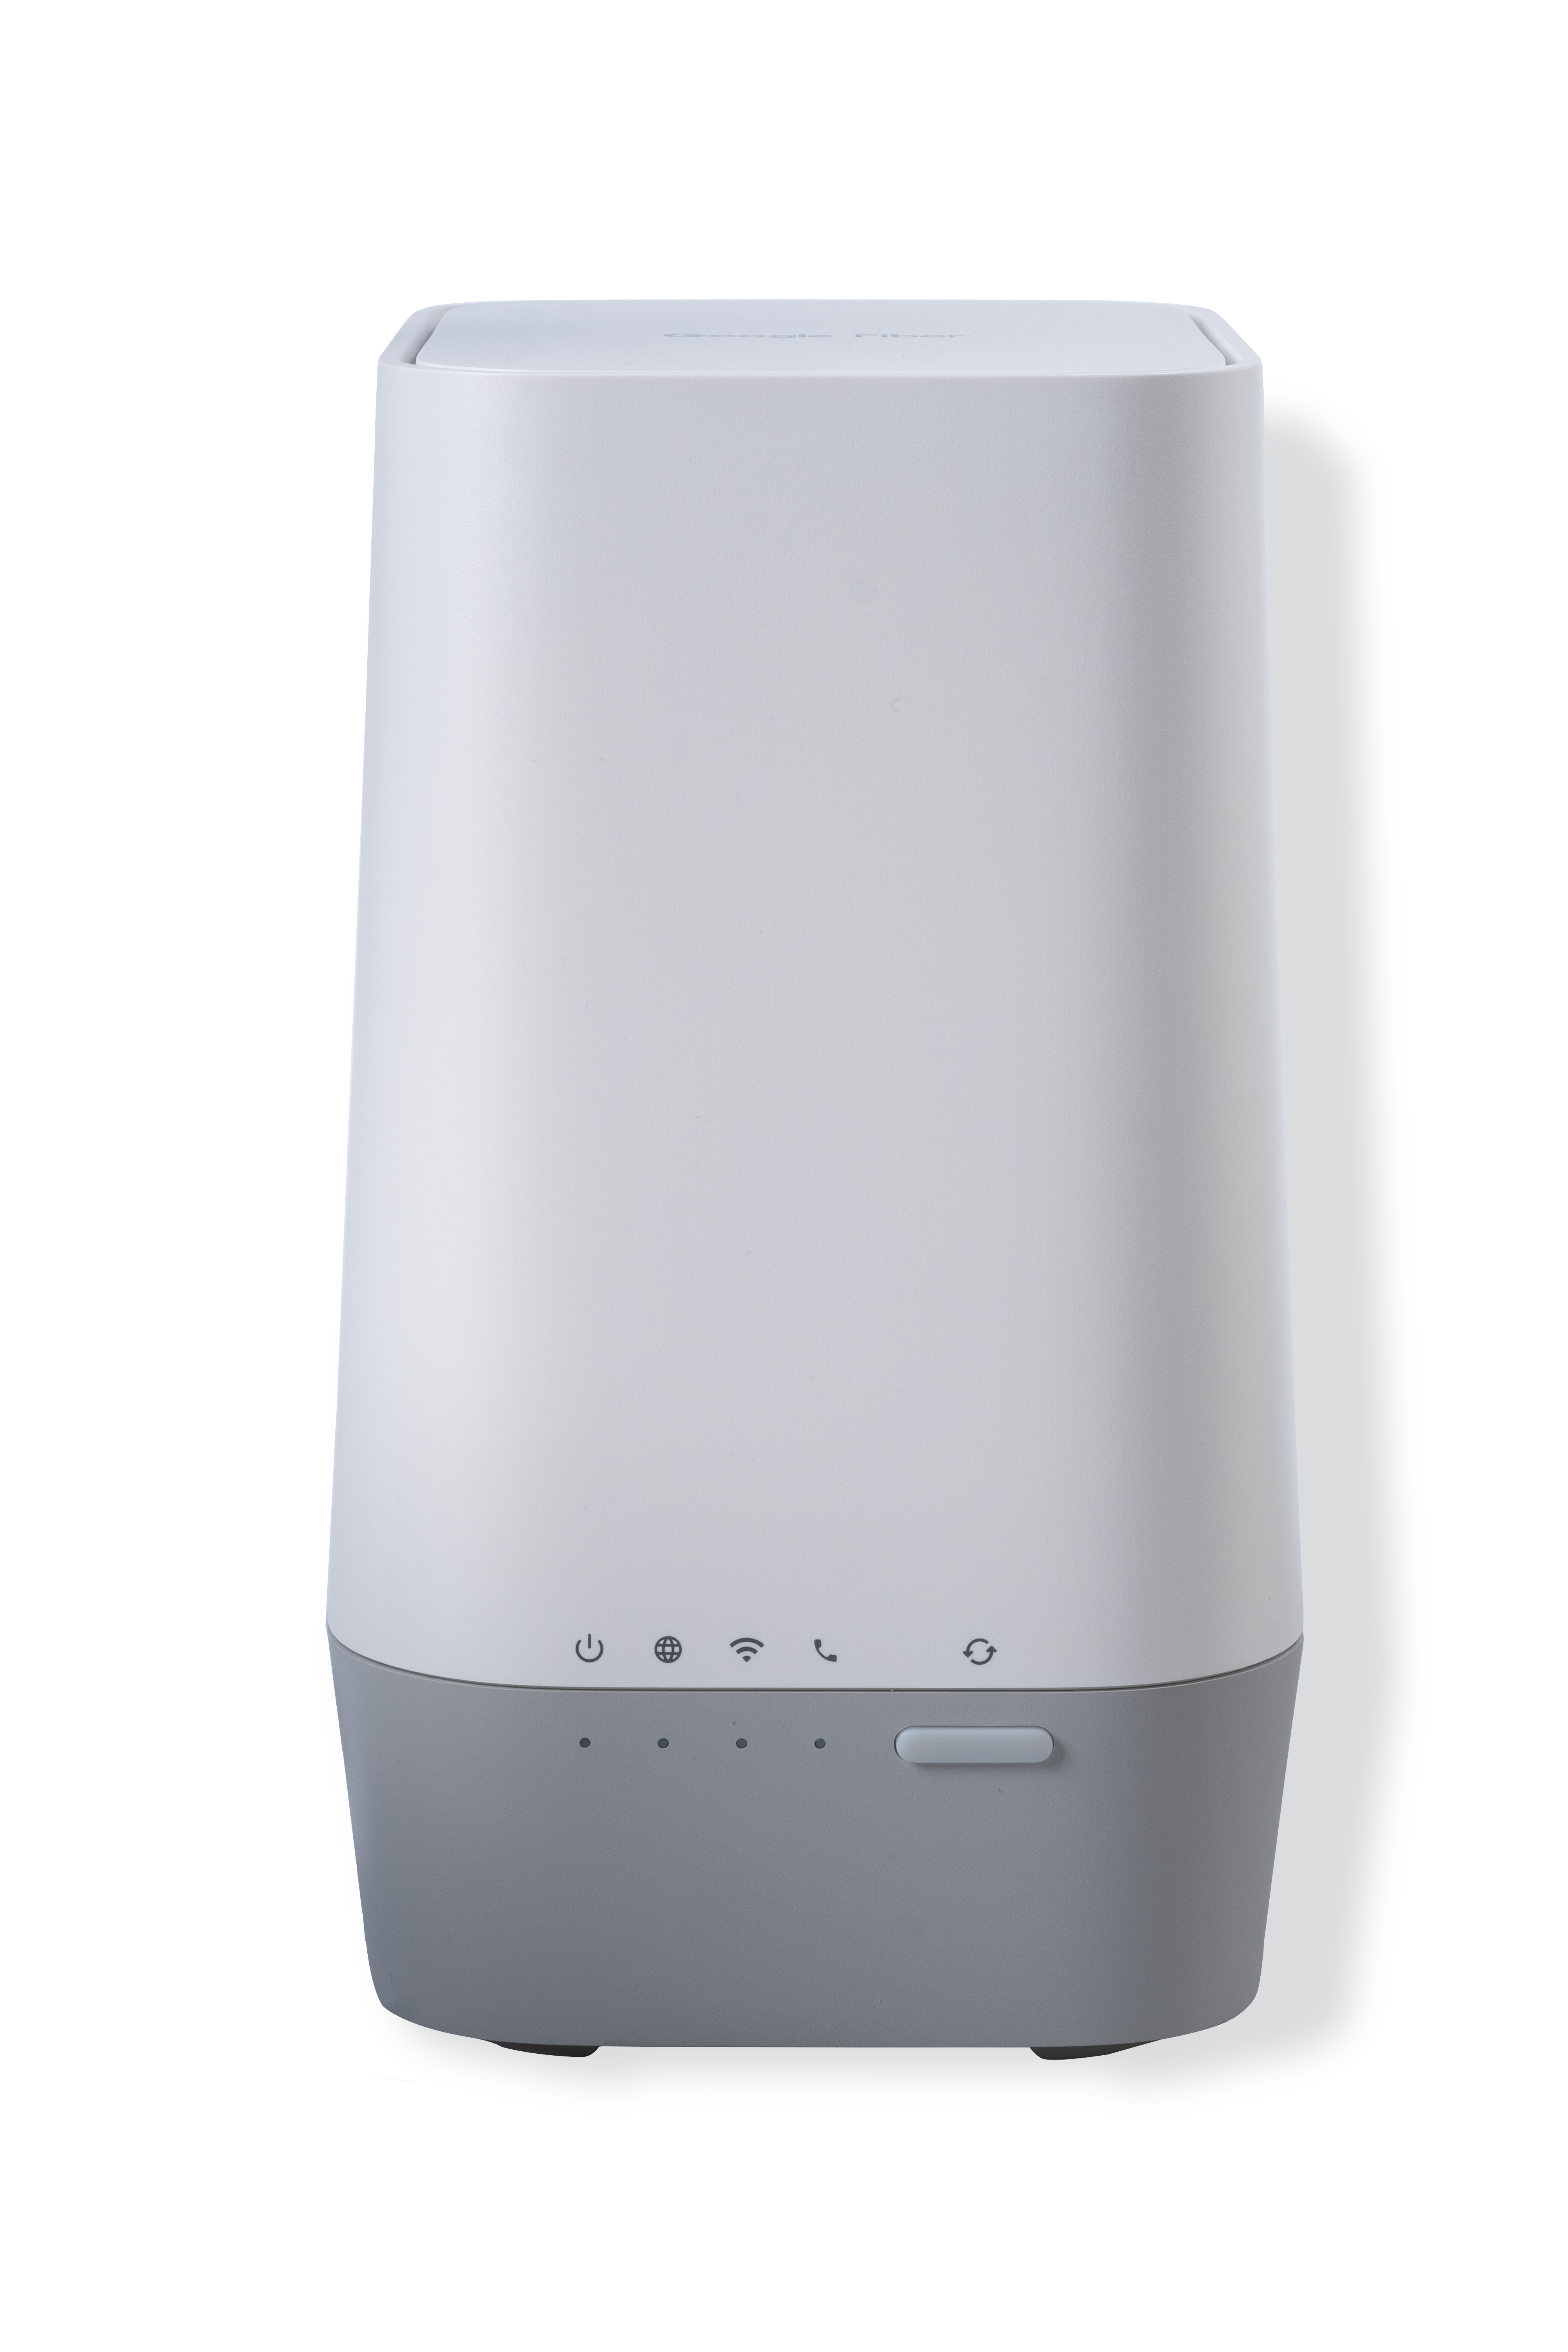 gf-product-2-gig-router-front-angle-white-bg.png